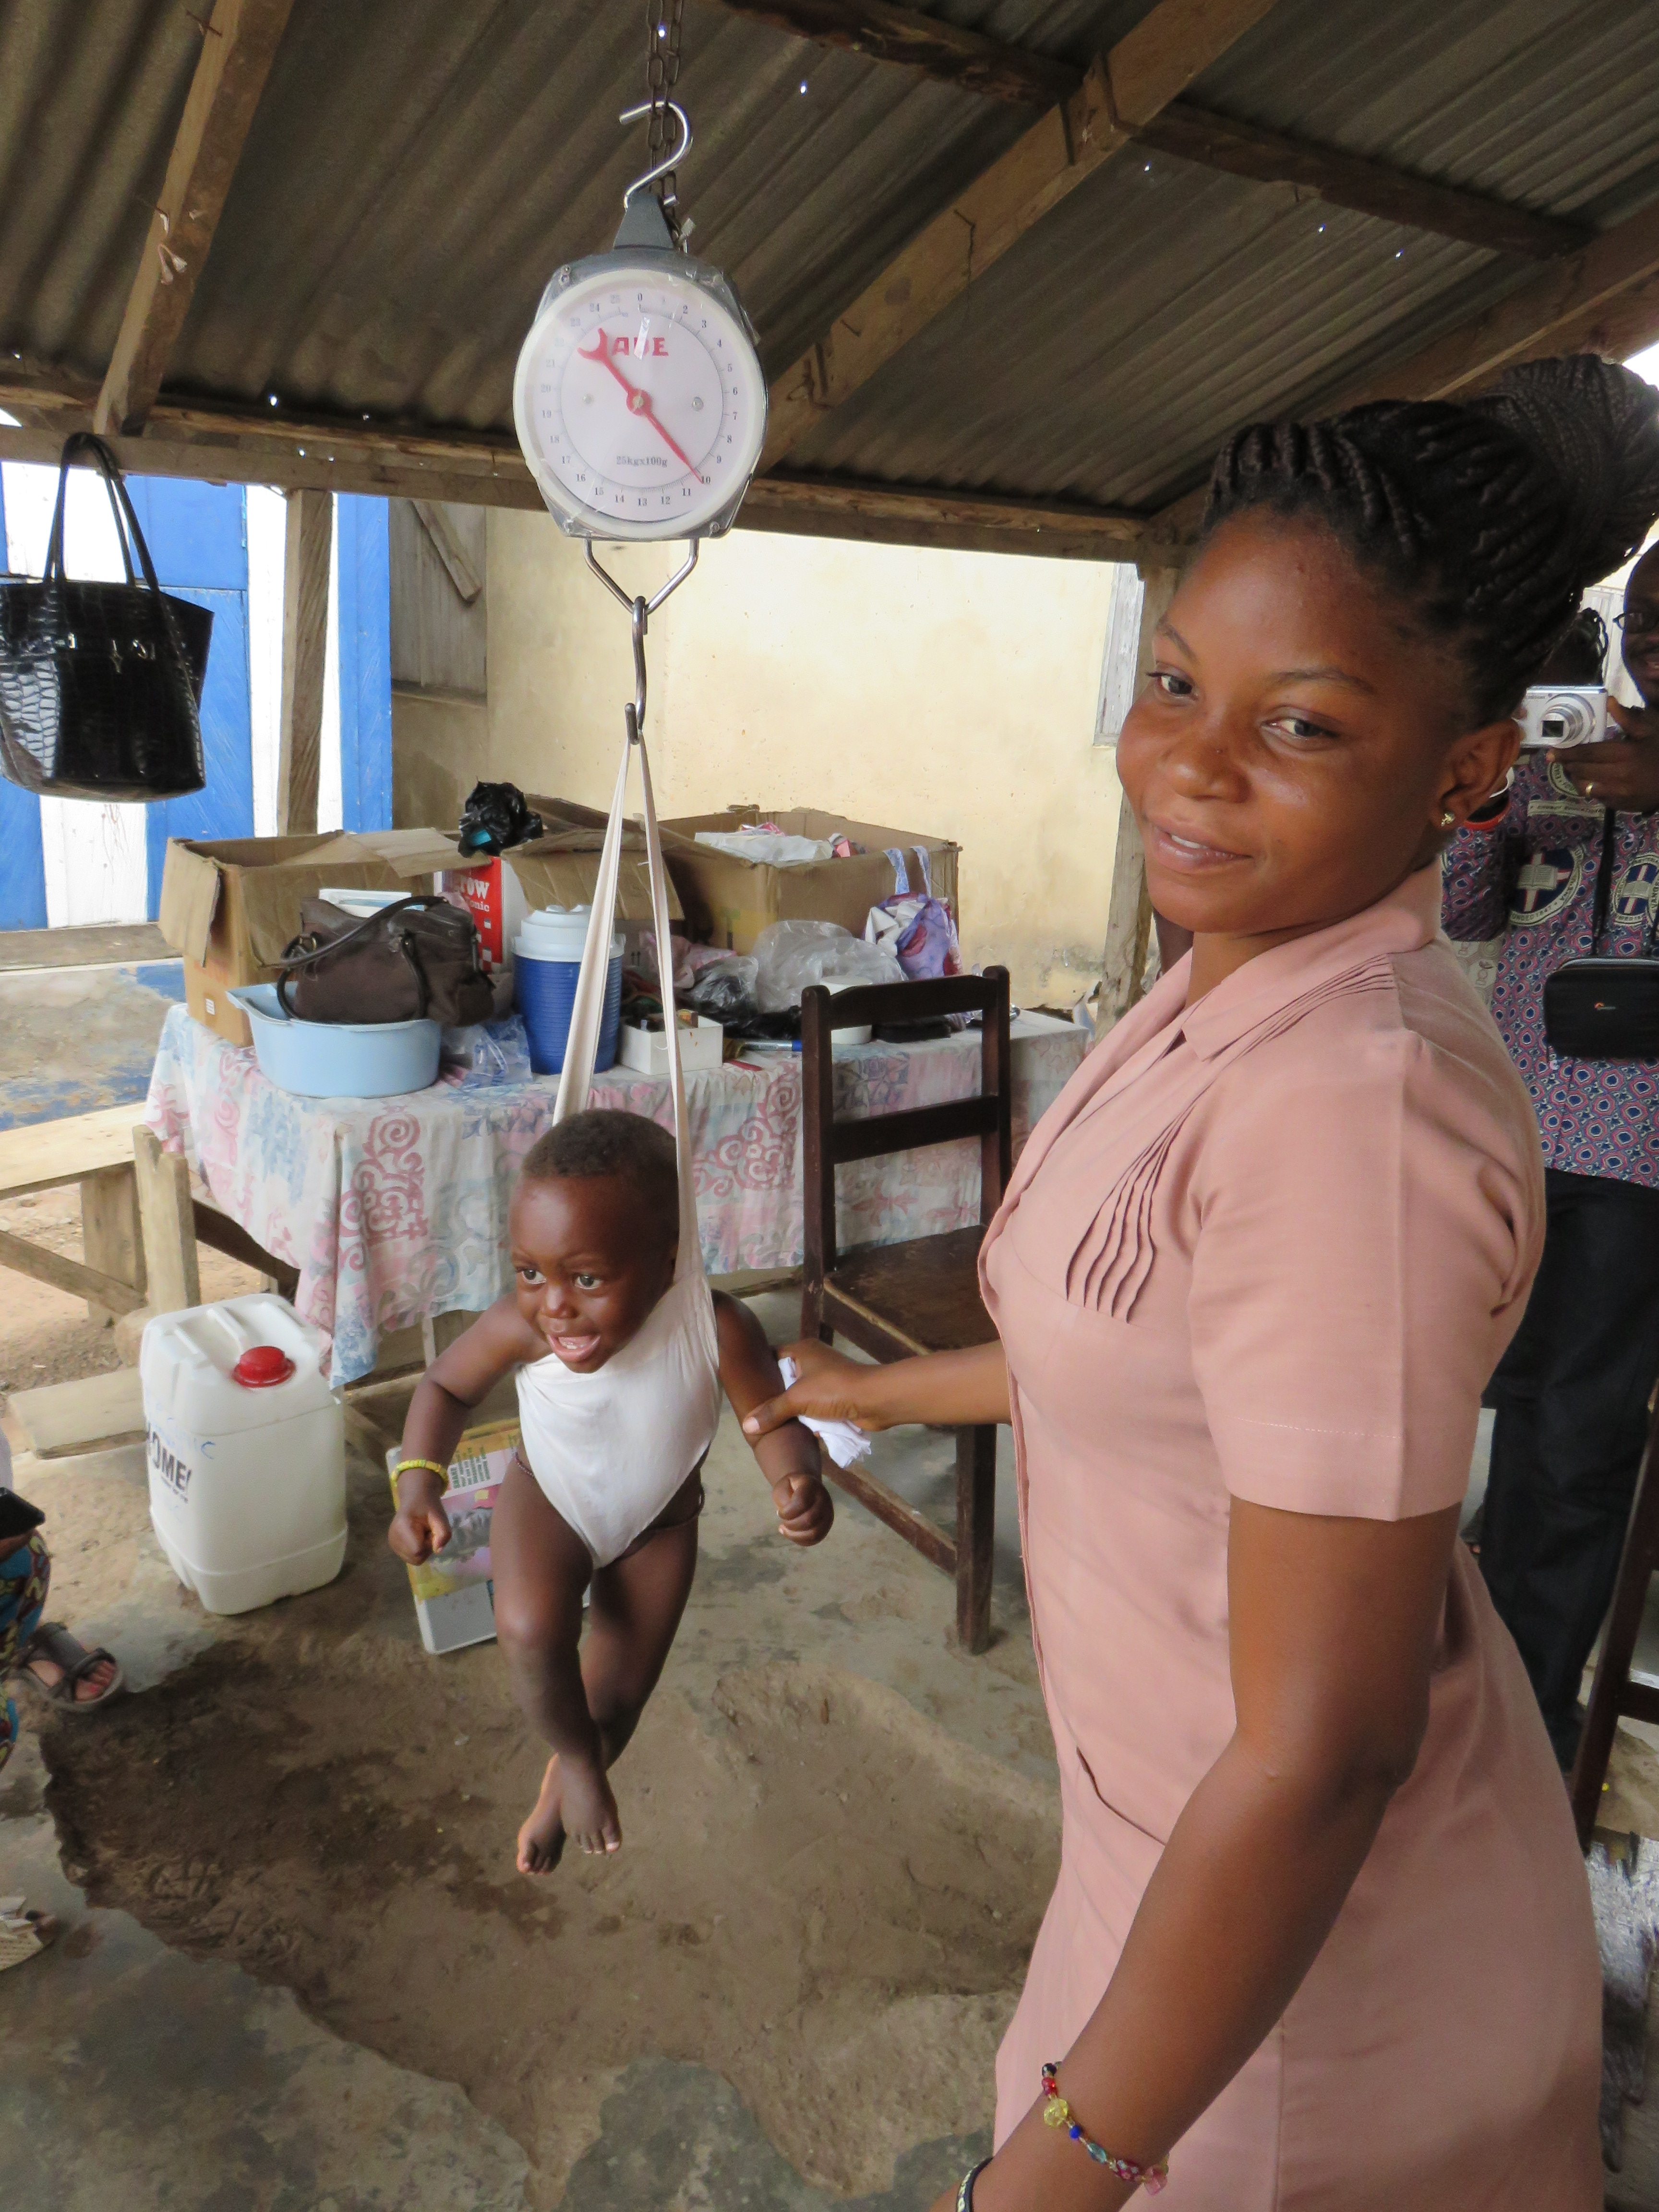 A midwife at the Dzemeni maternity clinic in Ghana, supported by First Presbyterian Church of Fairfield, Connecticut, weighs an infant to check on healthy growth and development. (Photo by Josh Heikkila)